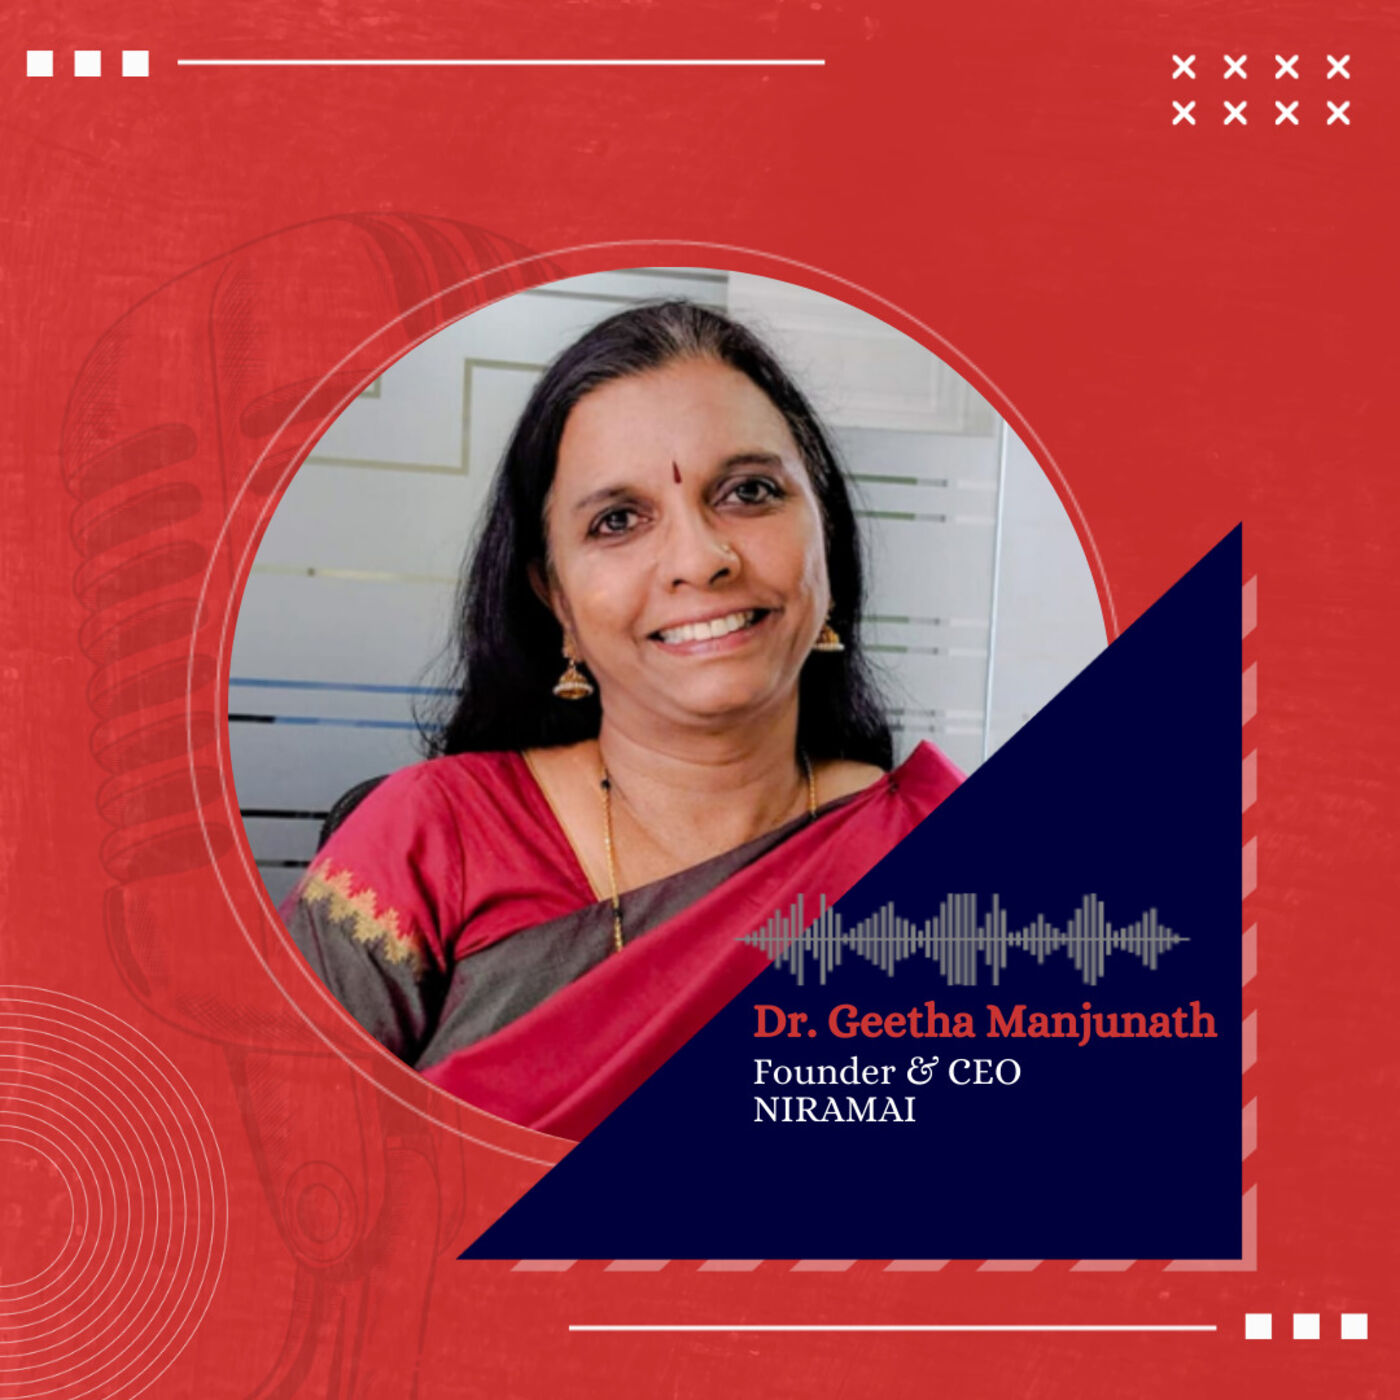 Dr. Geetha Manjunath on building Niramai, the most affordable product for breast cancer detection in the world